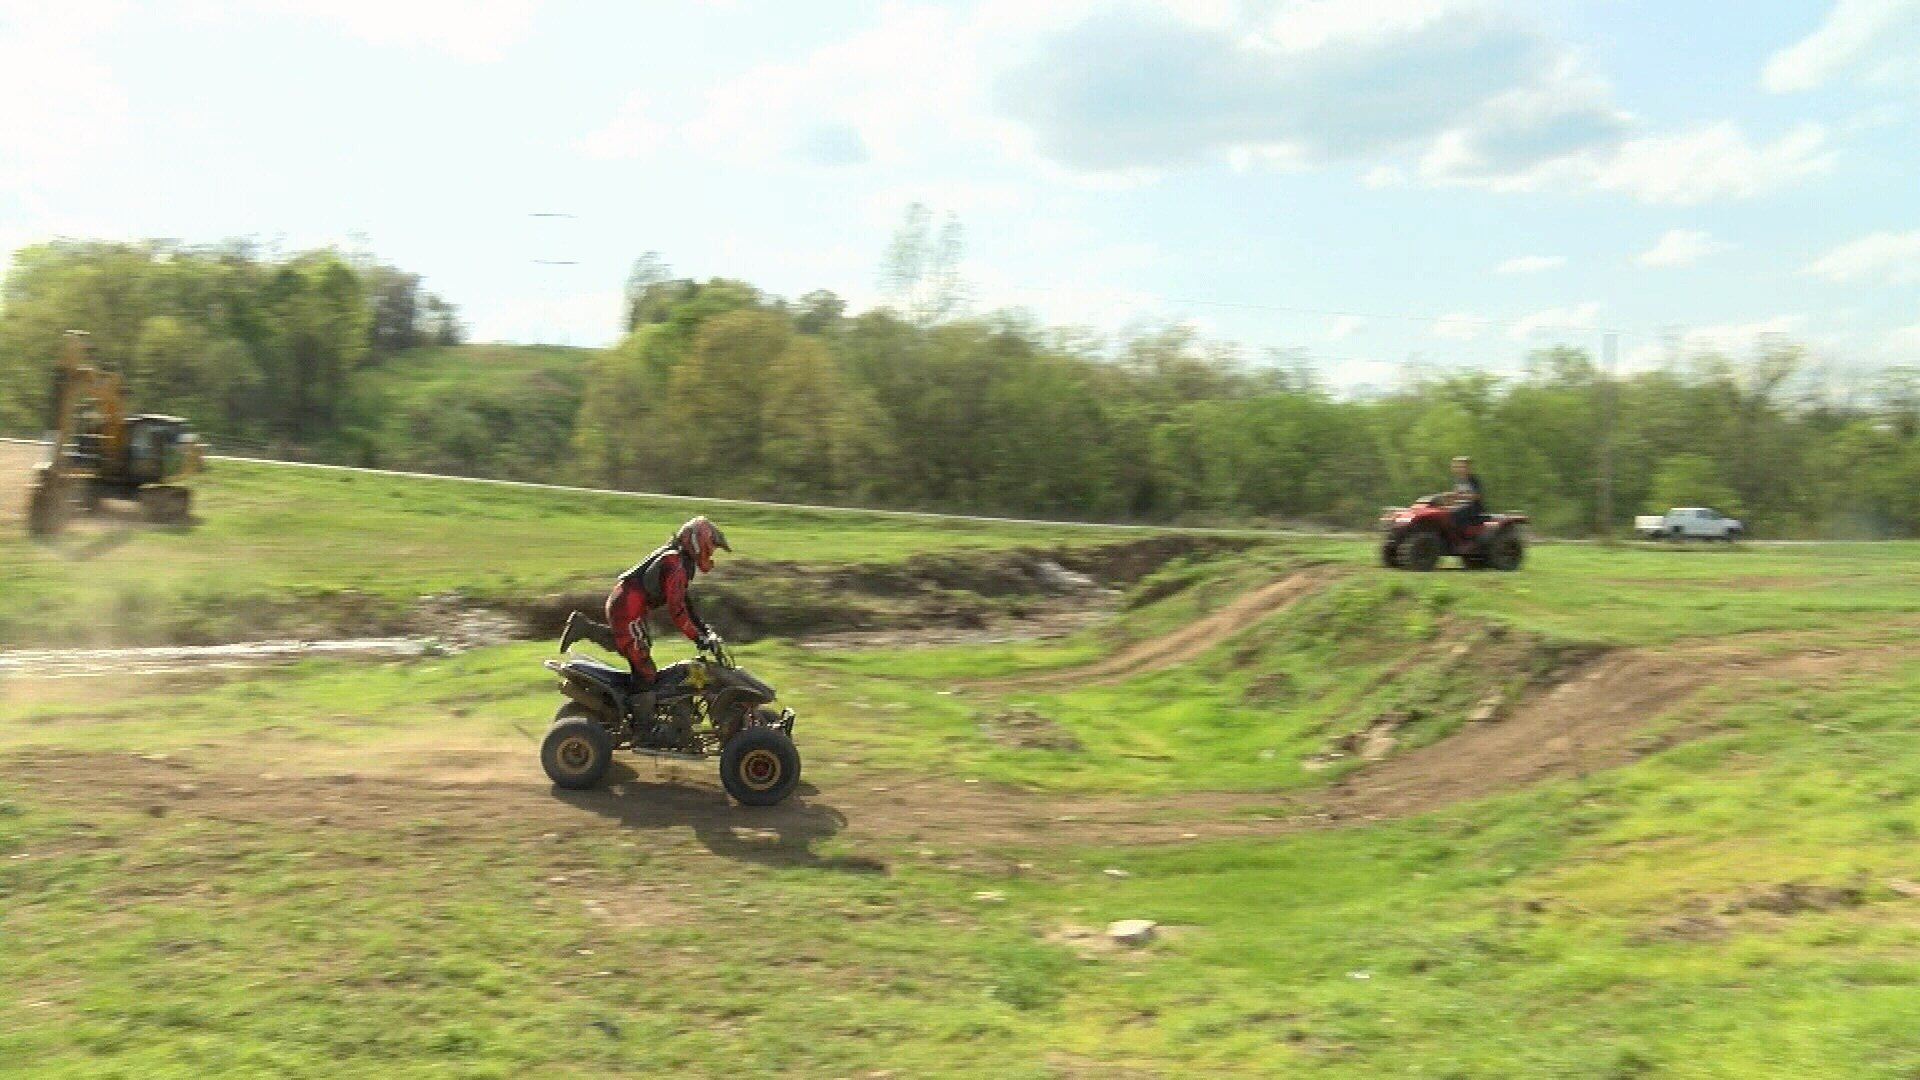 Offroad Park Provides Somewhat Safer Alternative To Riding